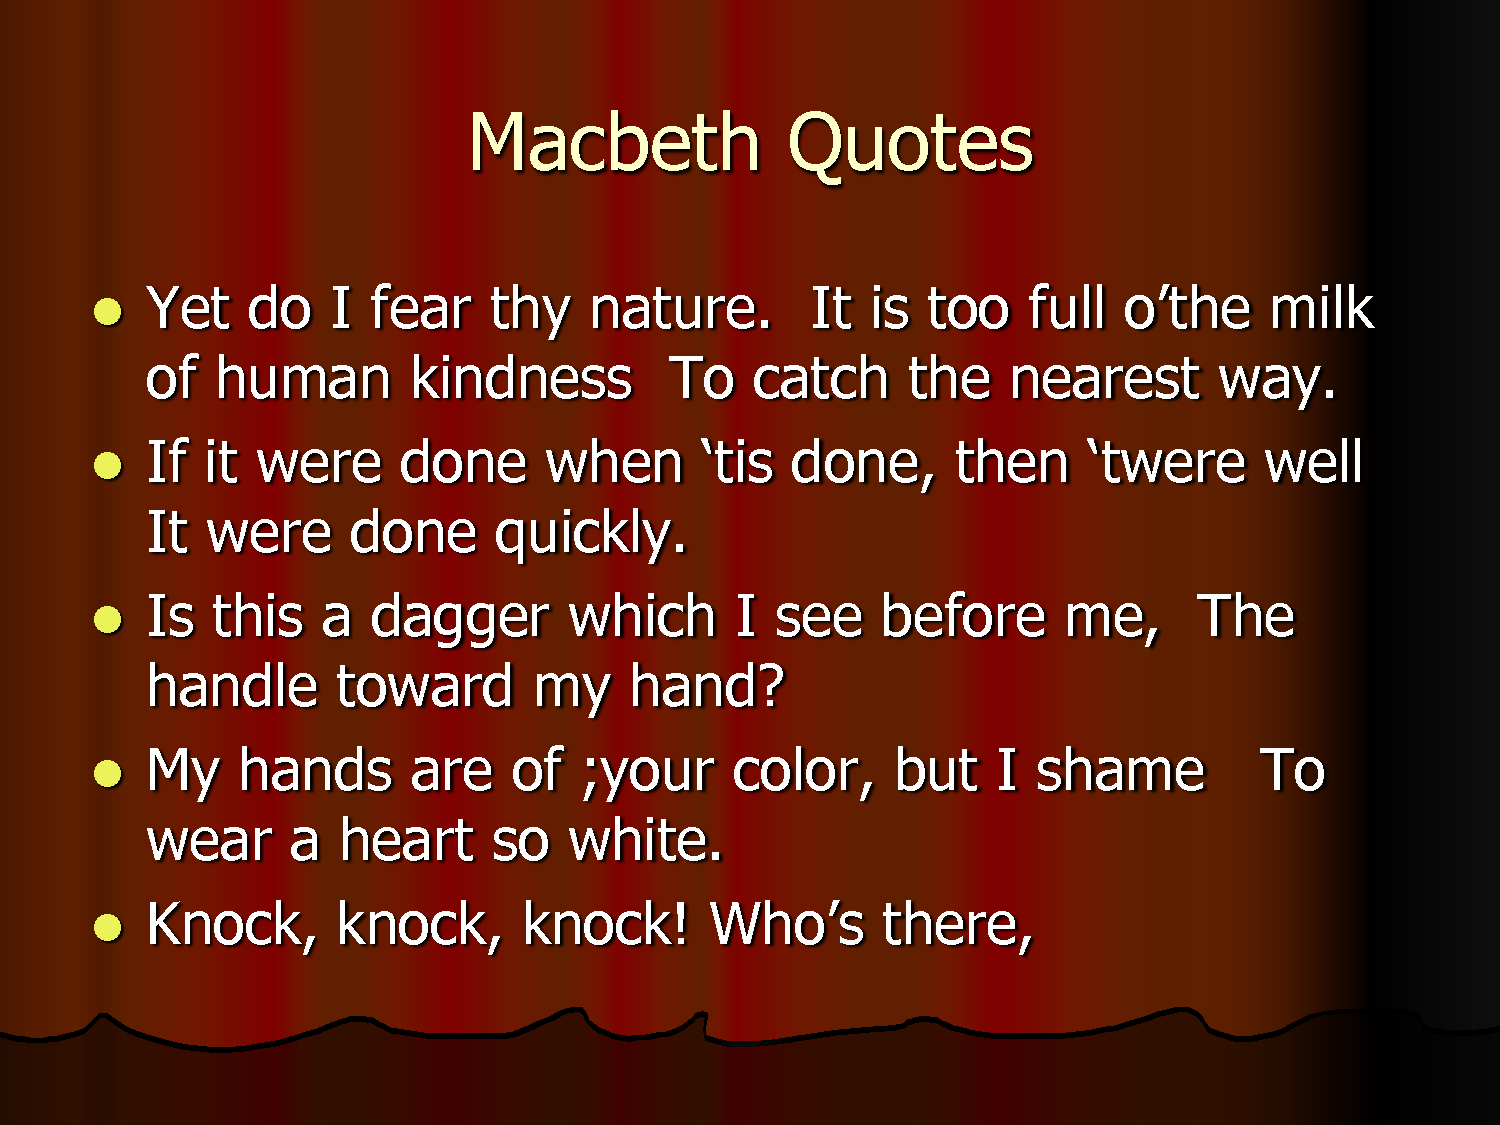 an analysis of the types of fear present in macbeth by william shakespeare The protagonist of this tragedy written by william shakespeare, macbeth belongs to the rare type of reluctant villains who understand all consequences of their deeds and are horrified by them the theme of remorse and triumph of justice is a live issue at all times, including present.